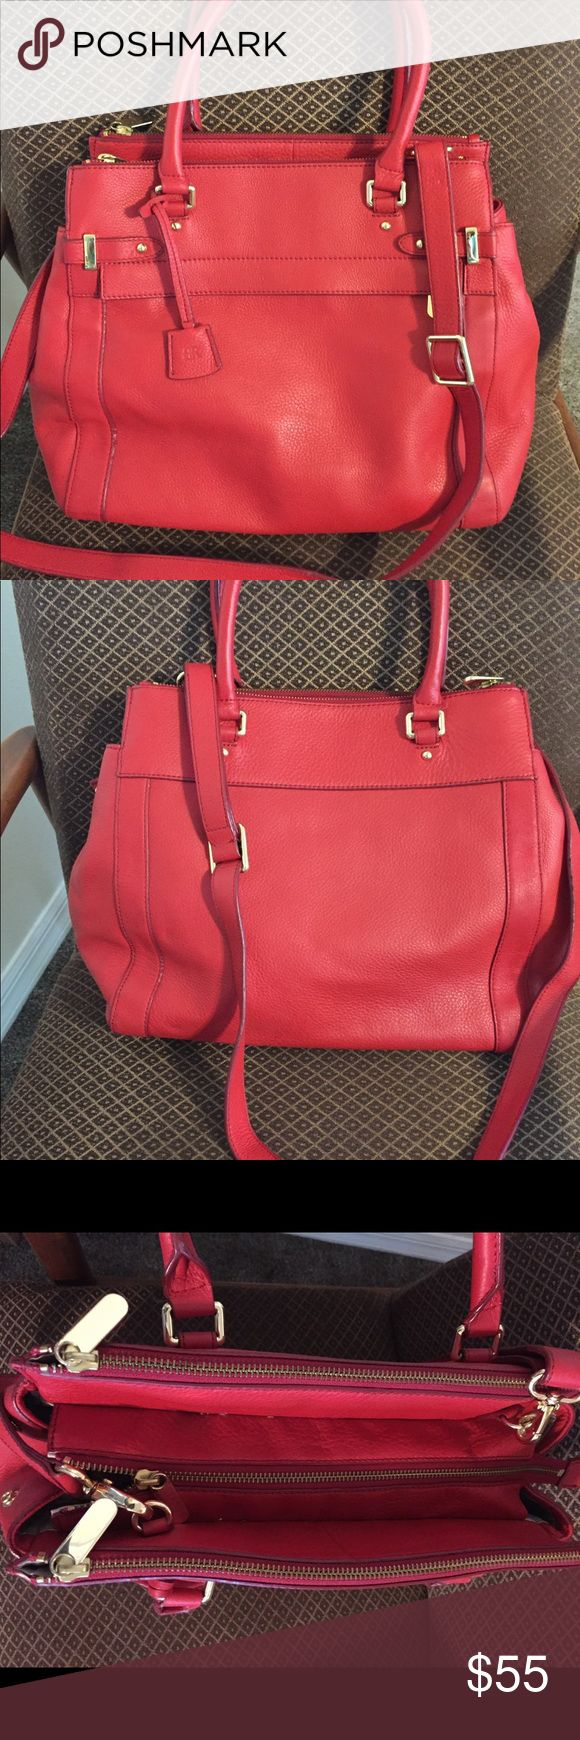 """Banana Republic Red Leather Tote 15 x 12 NEW! Banana Republic Red Leather Tote. 6"""" deep, Long adjustable strap includes. Zipper closure, multiple pockets. Leather is so soft! Banana Republic Bags Shoulder Bags"""